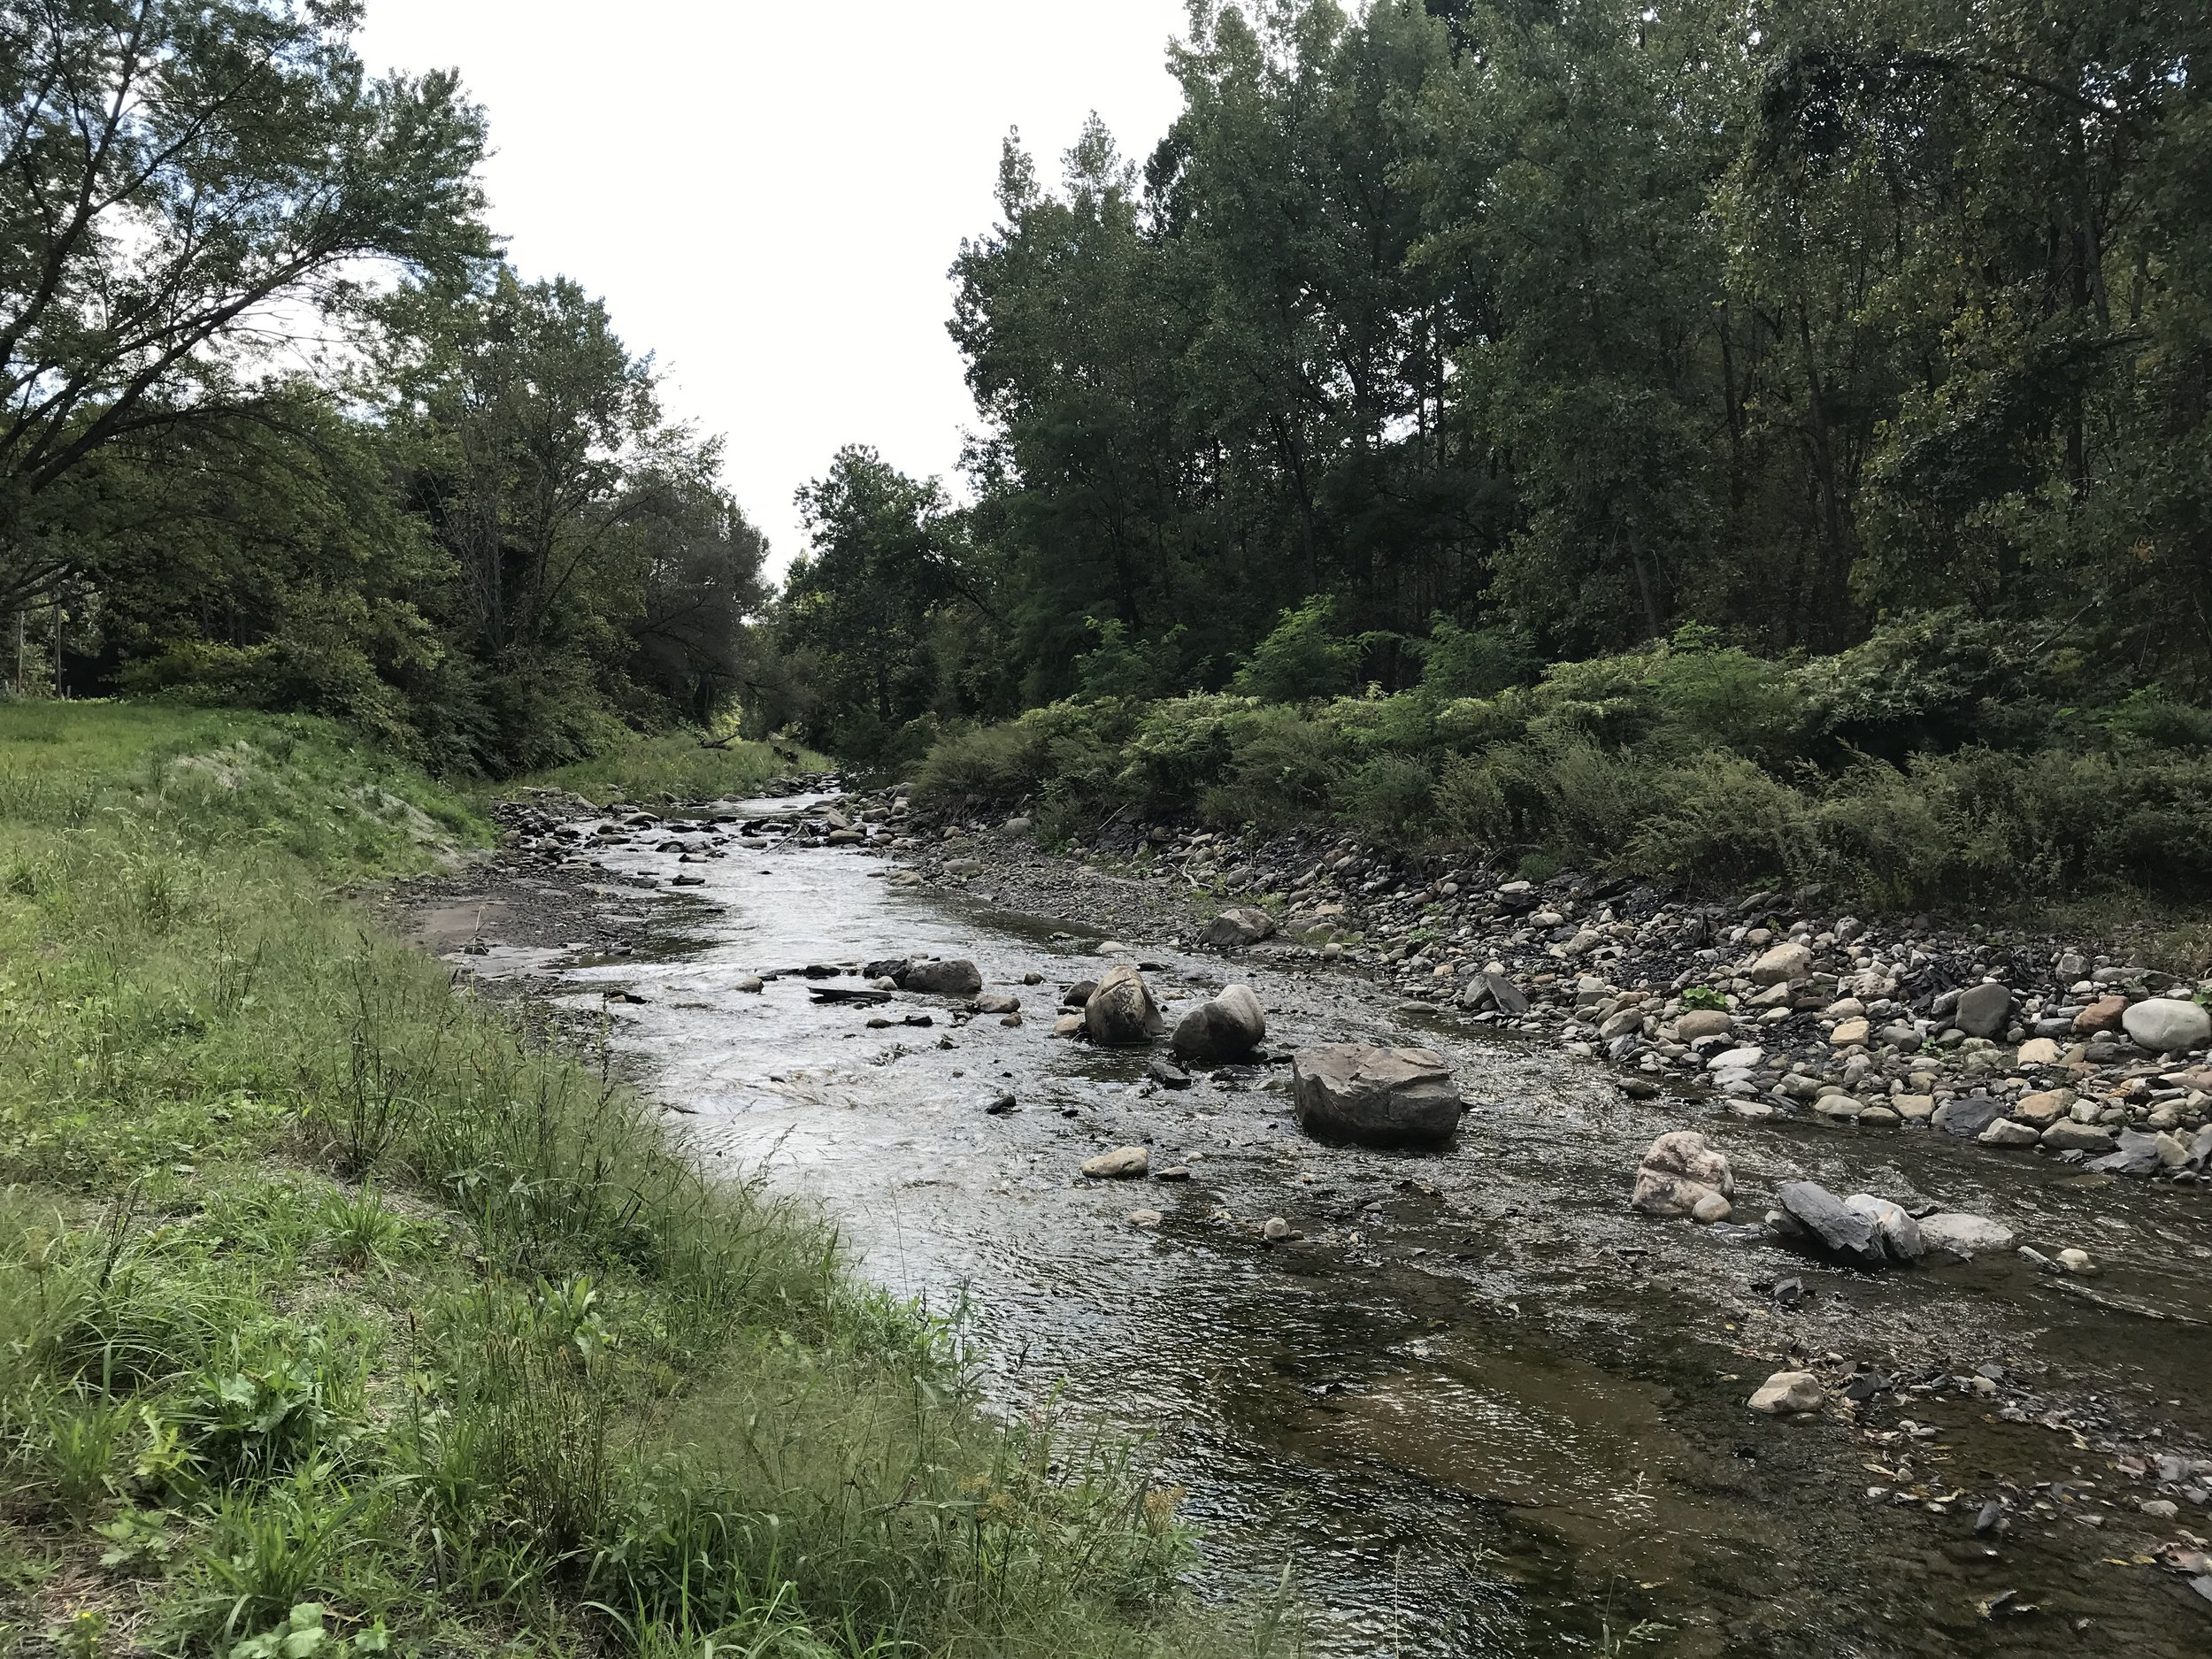 Fulmer Creek GreenPlain Floodplain Restoration funded by a grant through the EFC Green Innovation Grant Program, completed in 2018